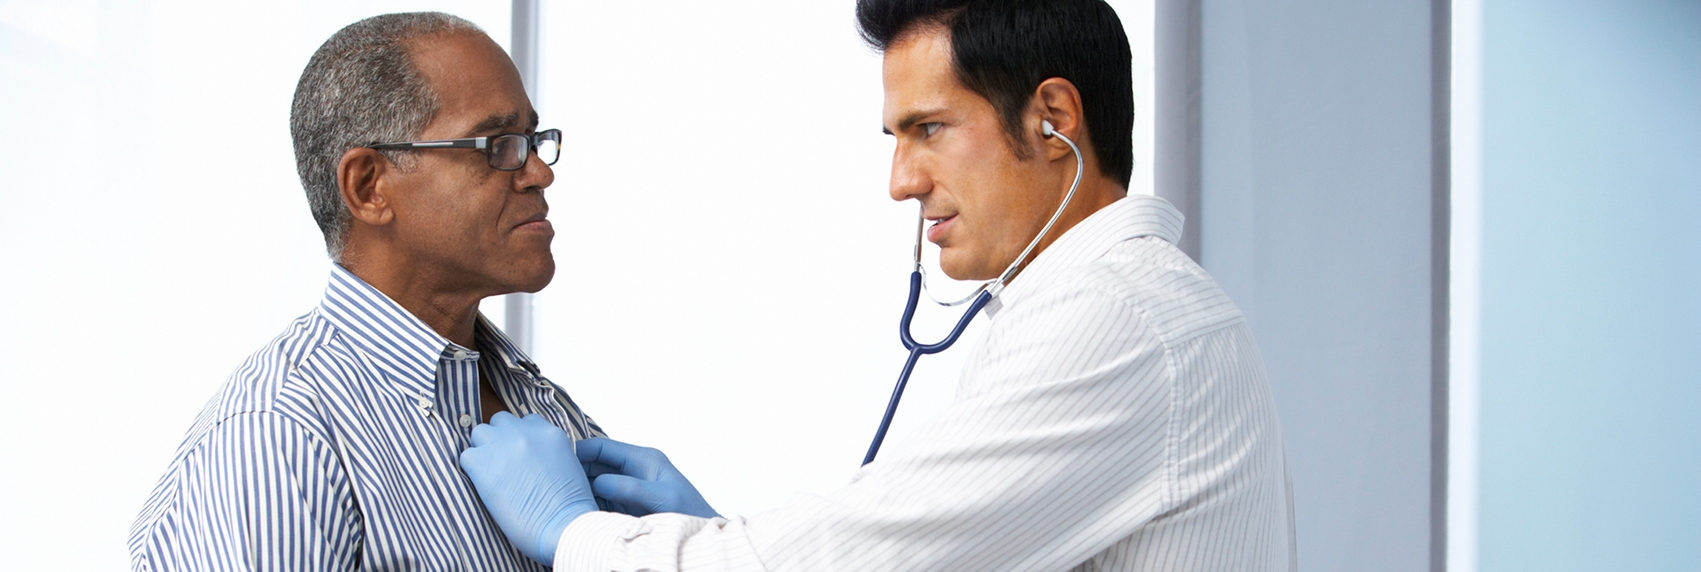 Male doctor listening to older patient's heart using a stethoscope.